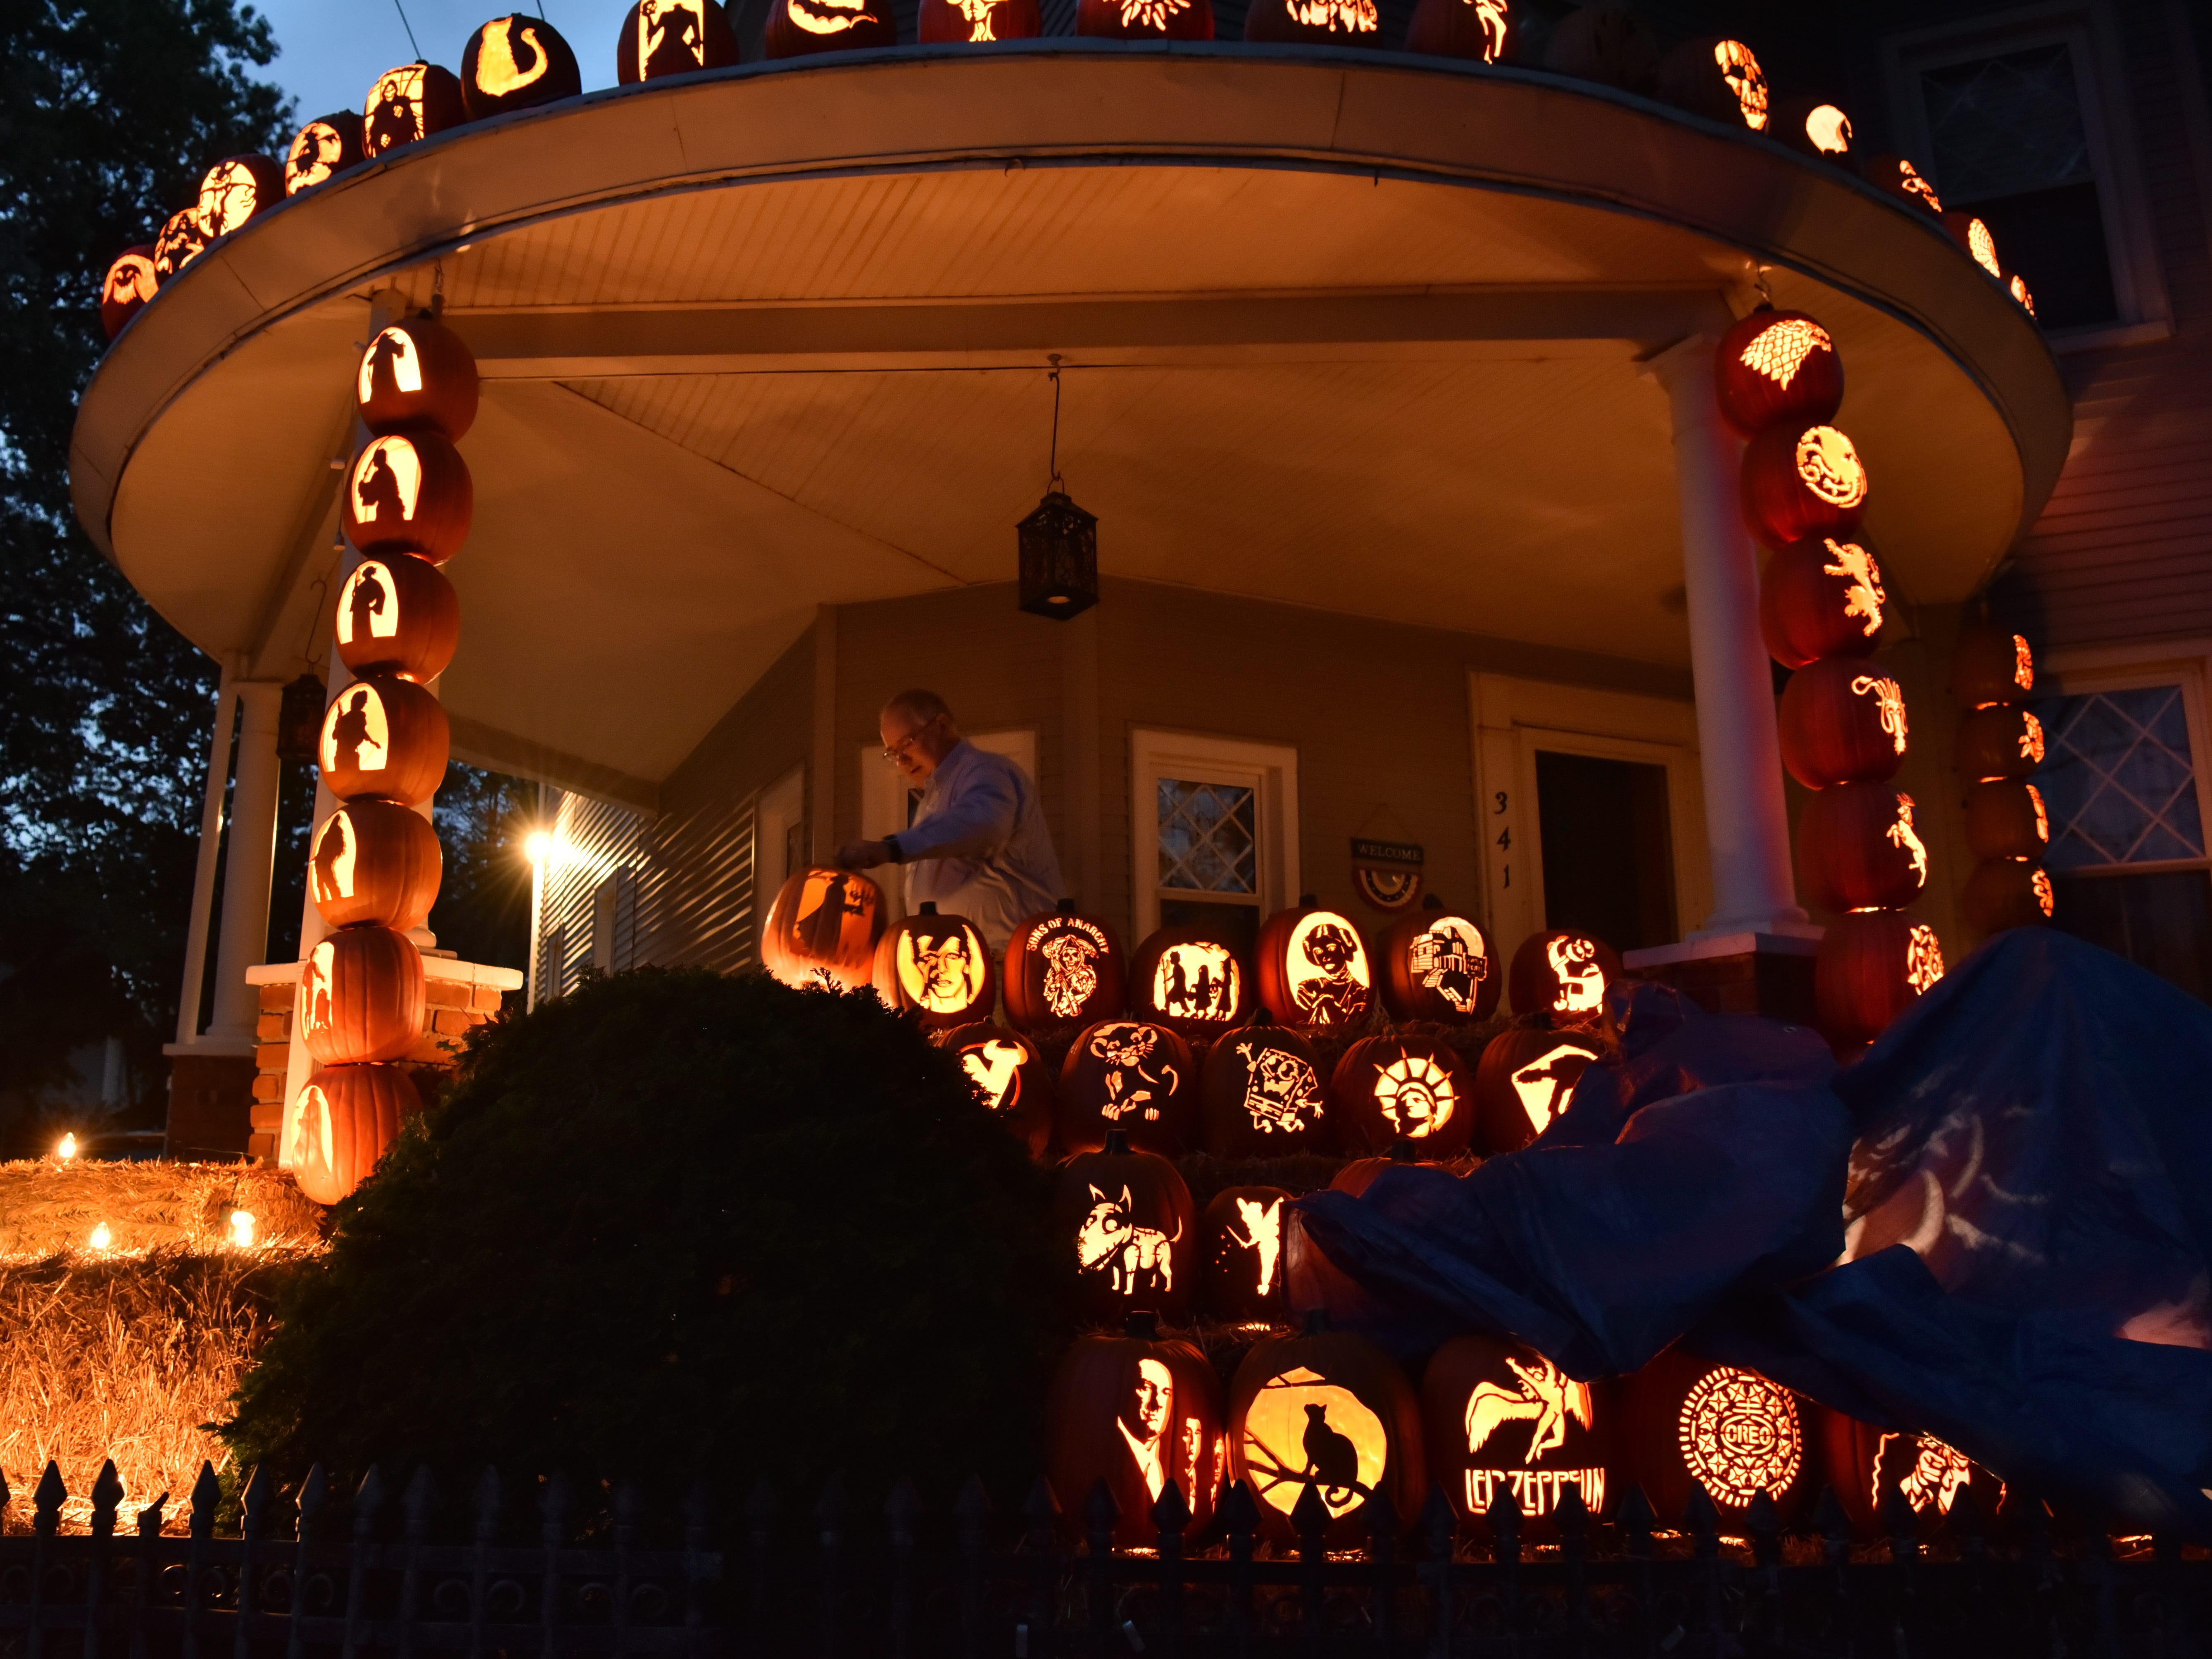 Michael Kemezis, decorates his home with jack o lantern Halloween decorations in Hackensack, on Tuesday, October 16, 2018.